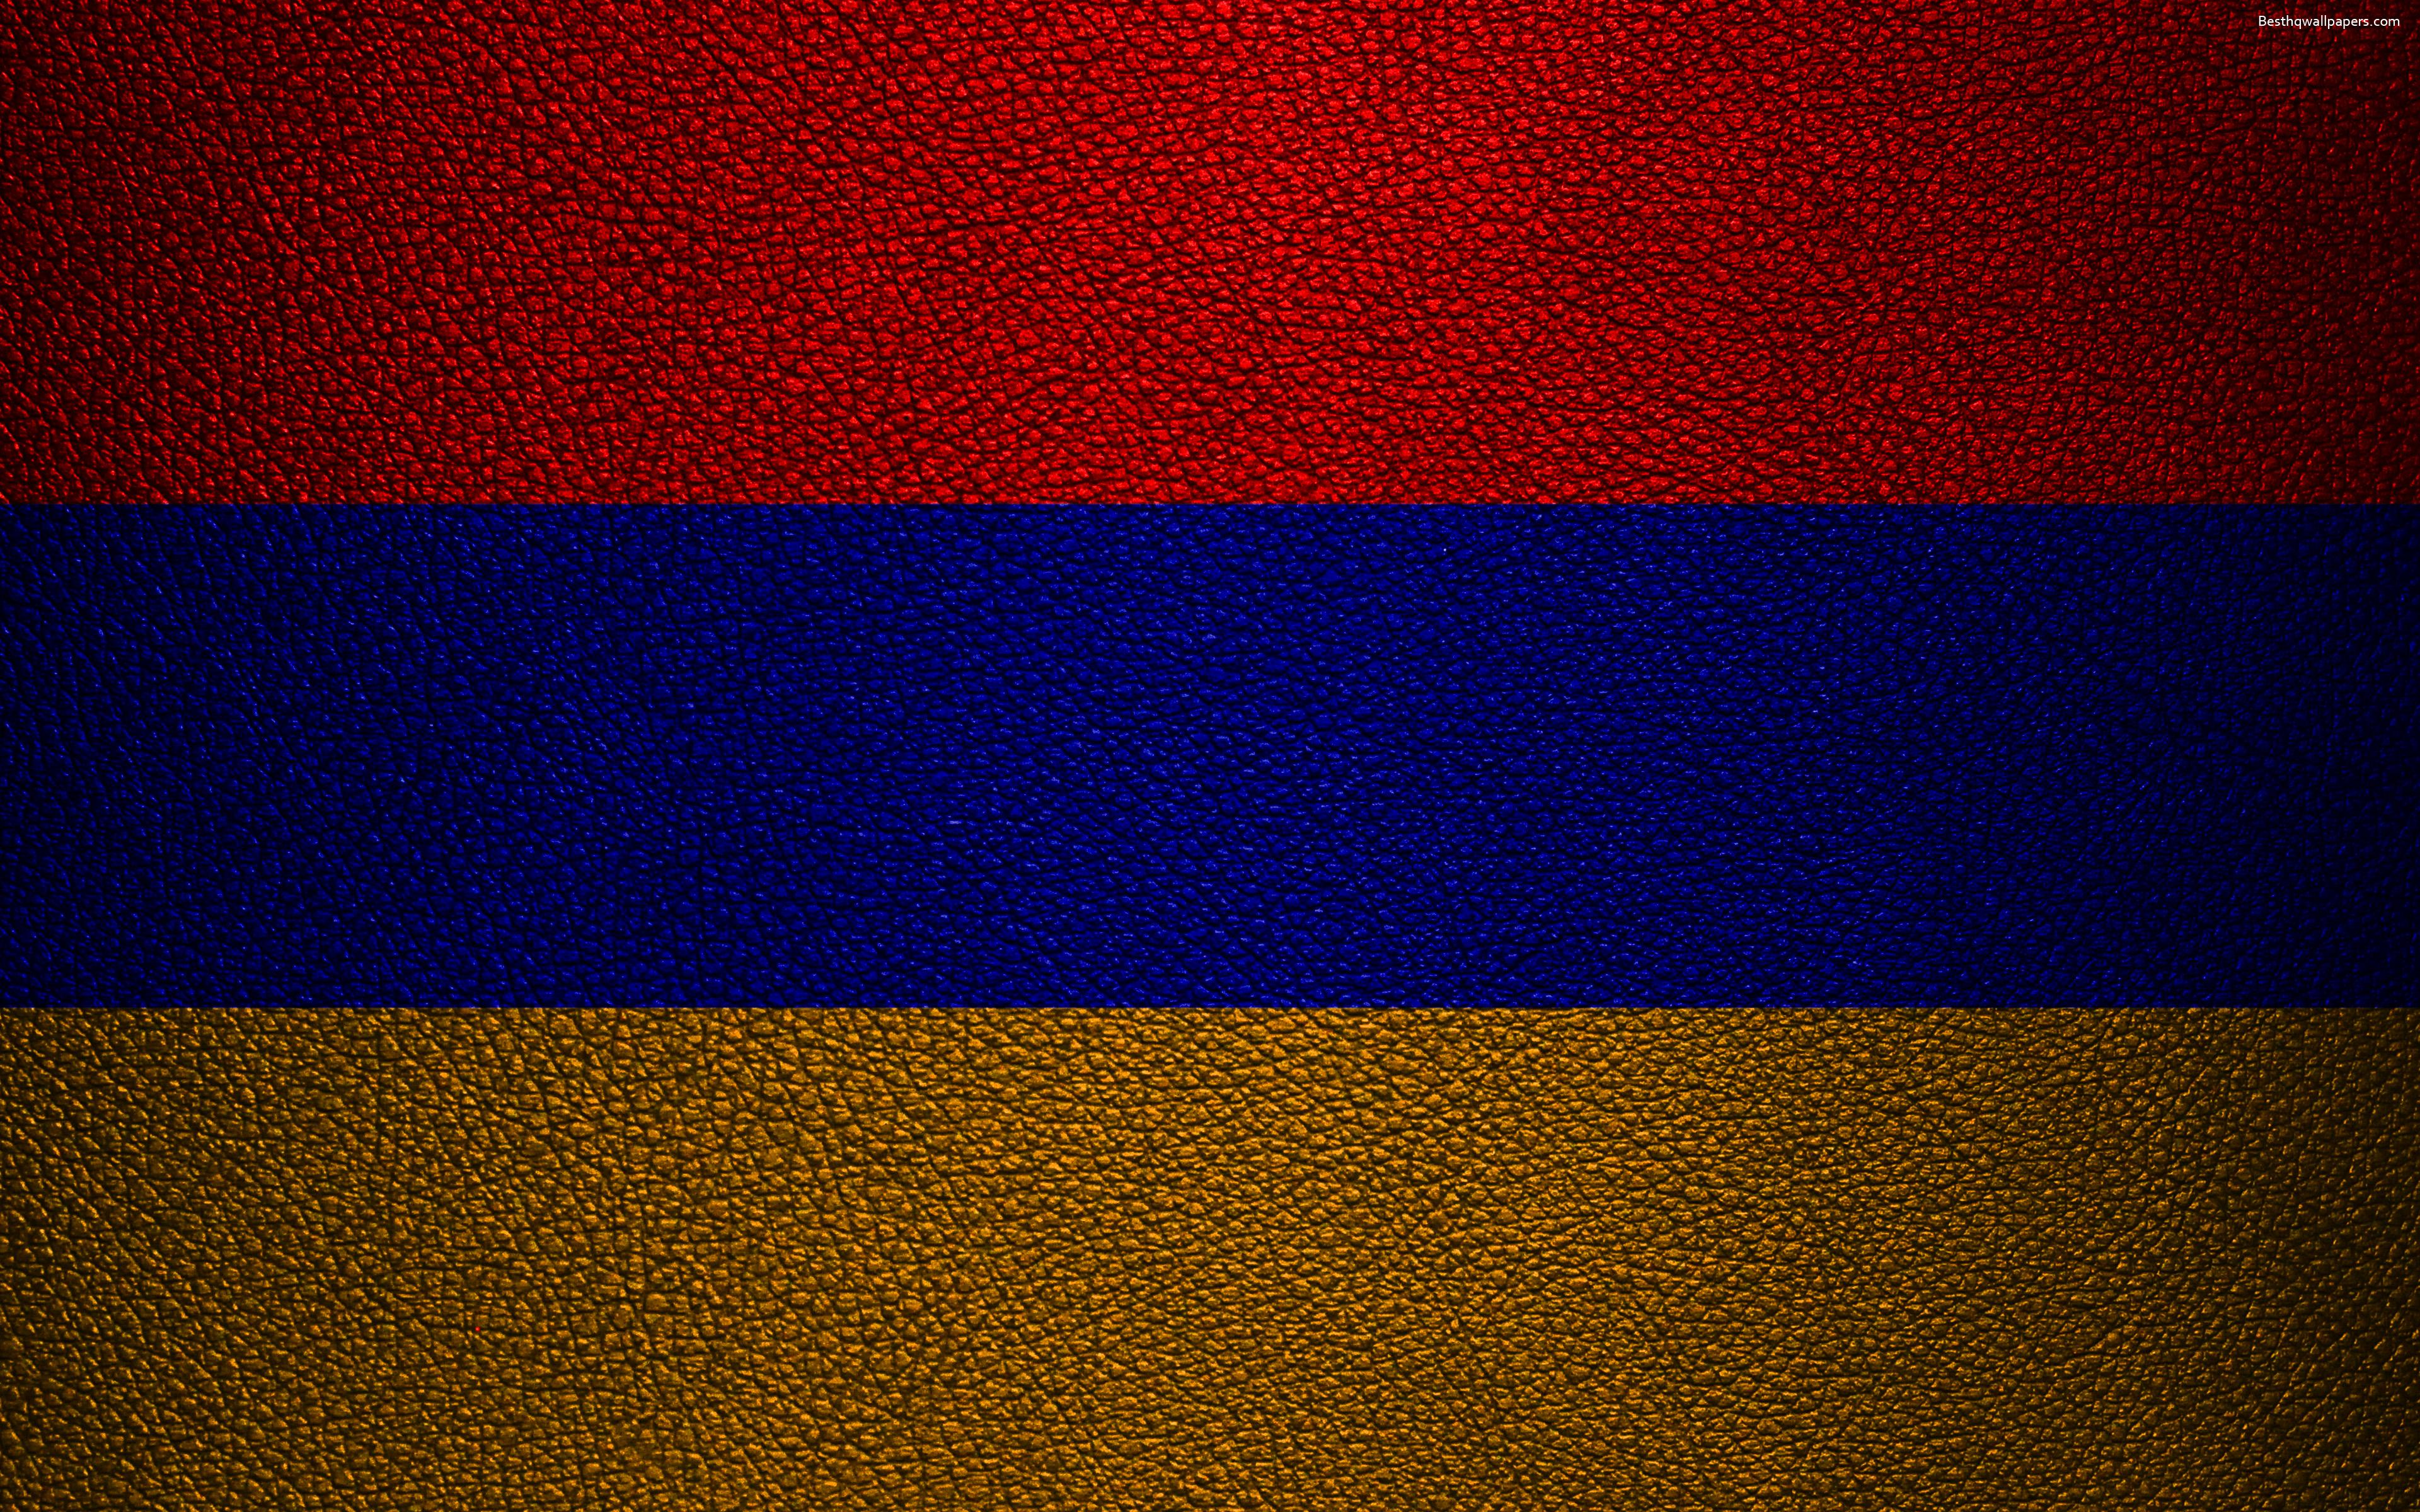 Download wallpapers Flag of Armenia, 4к, leather texture, Armenian